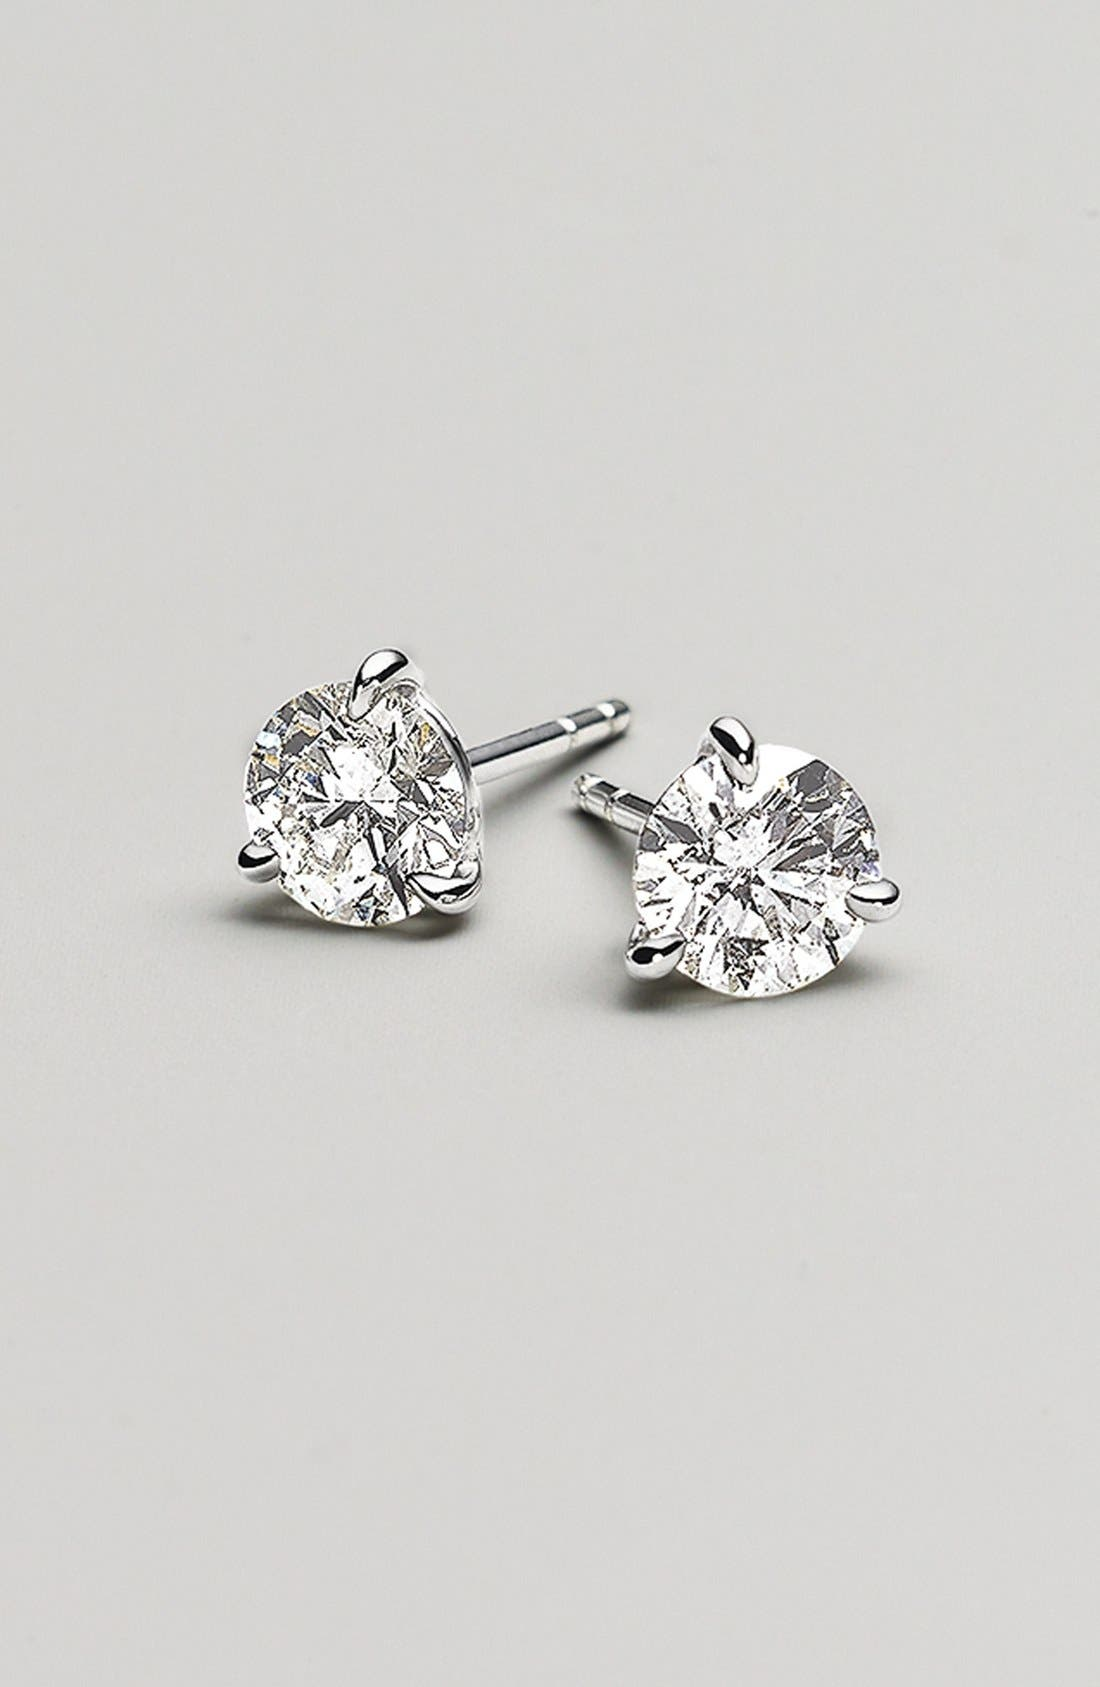 1.50ct tw Diamond & Platinum Stud Earrings,                             Alternate thumbnail 5, color,                             PLATINUM